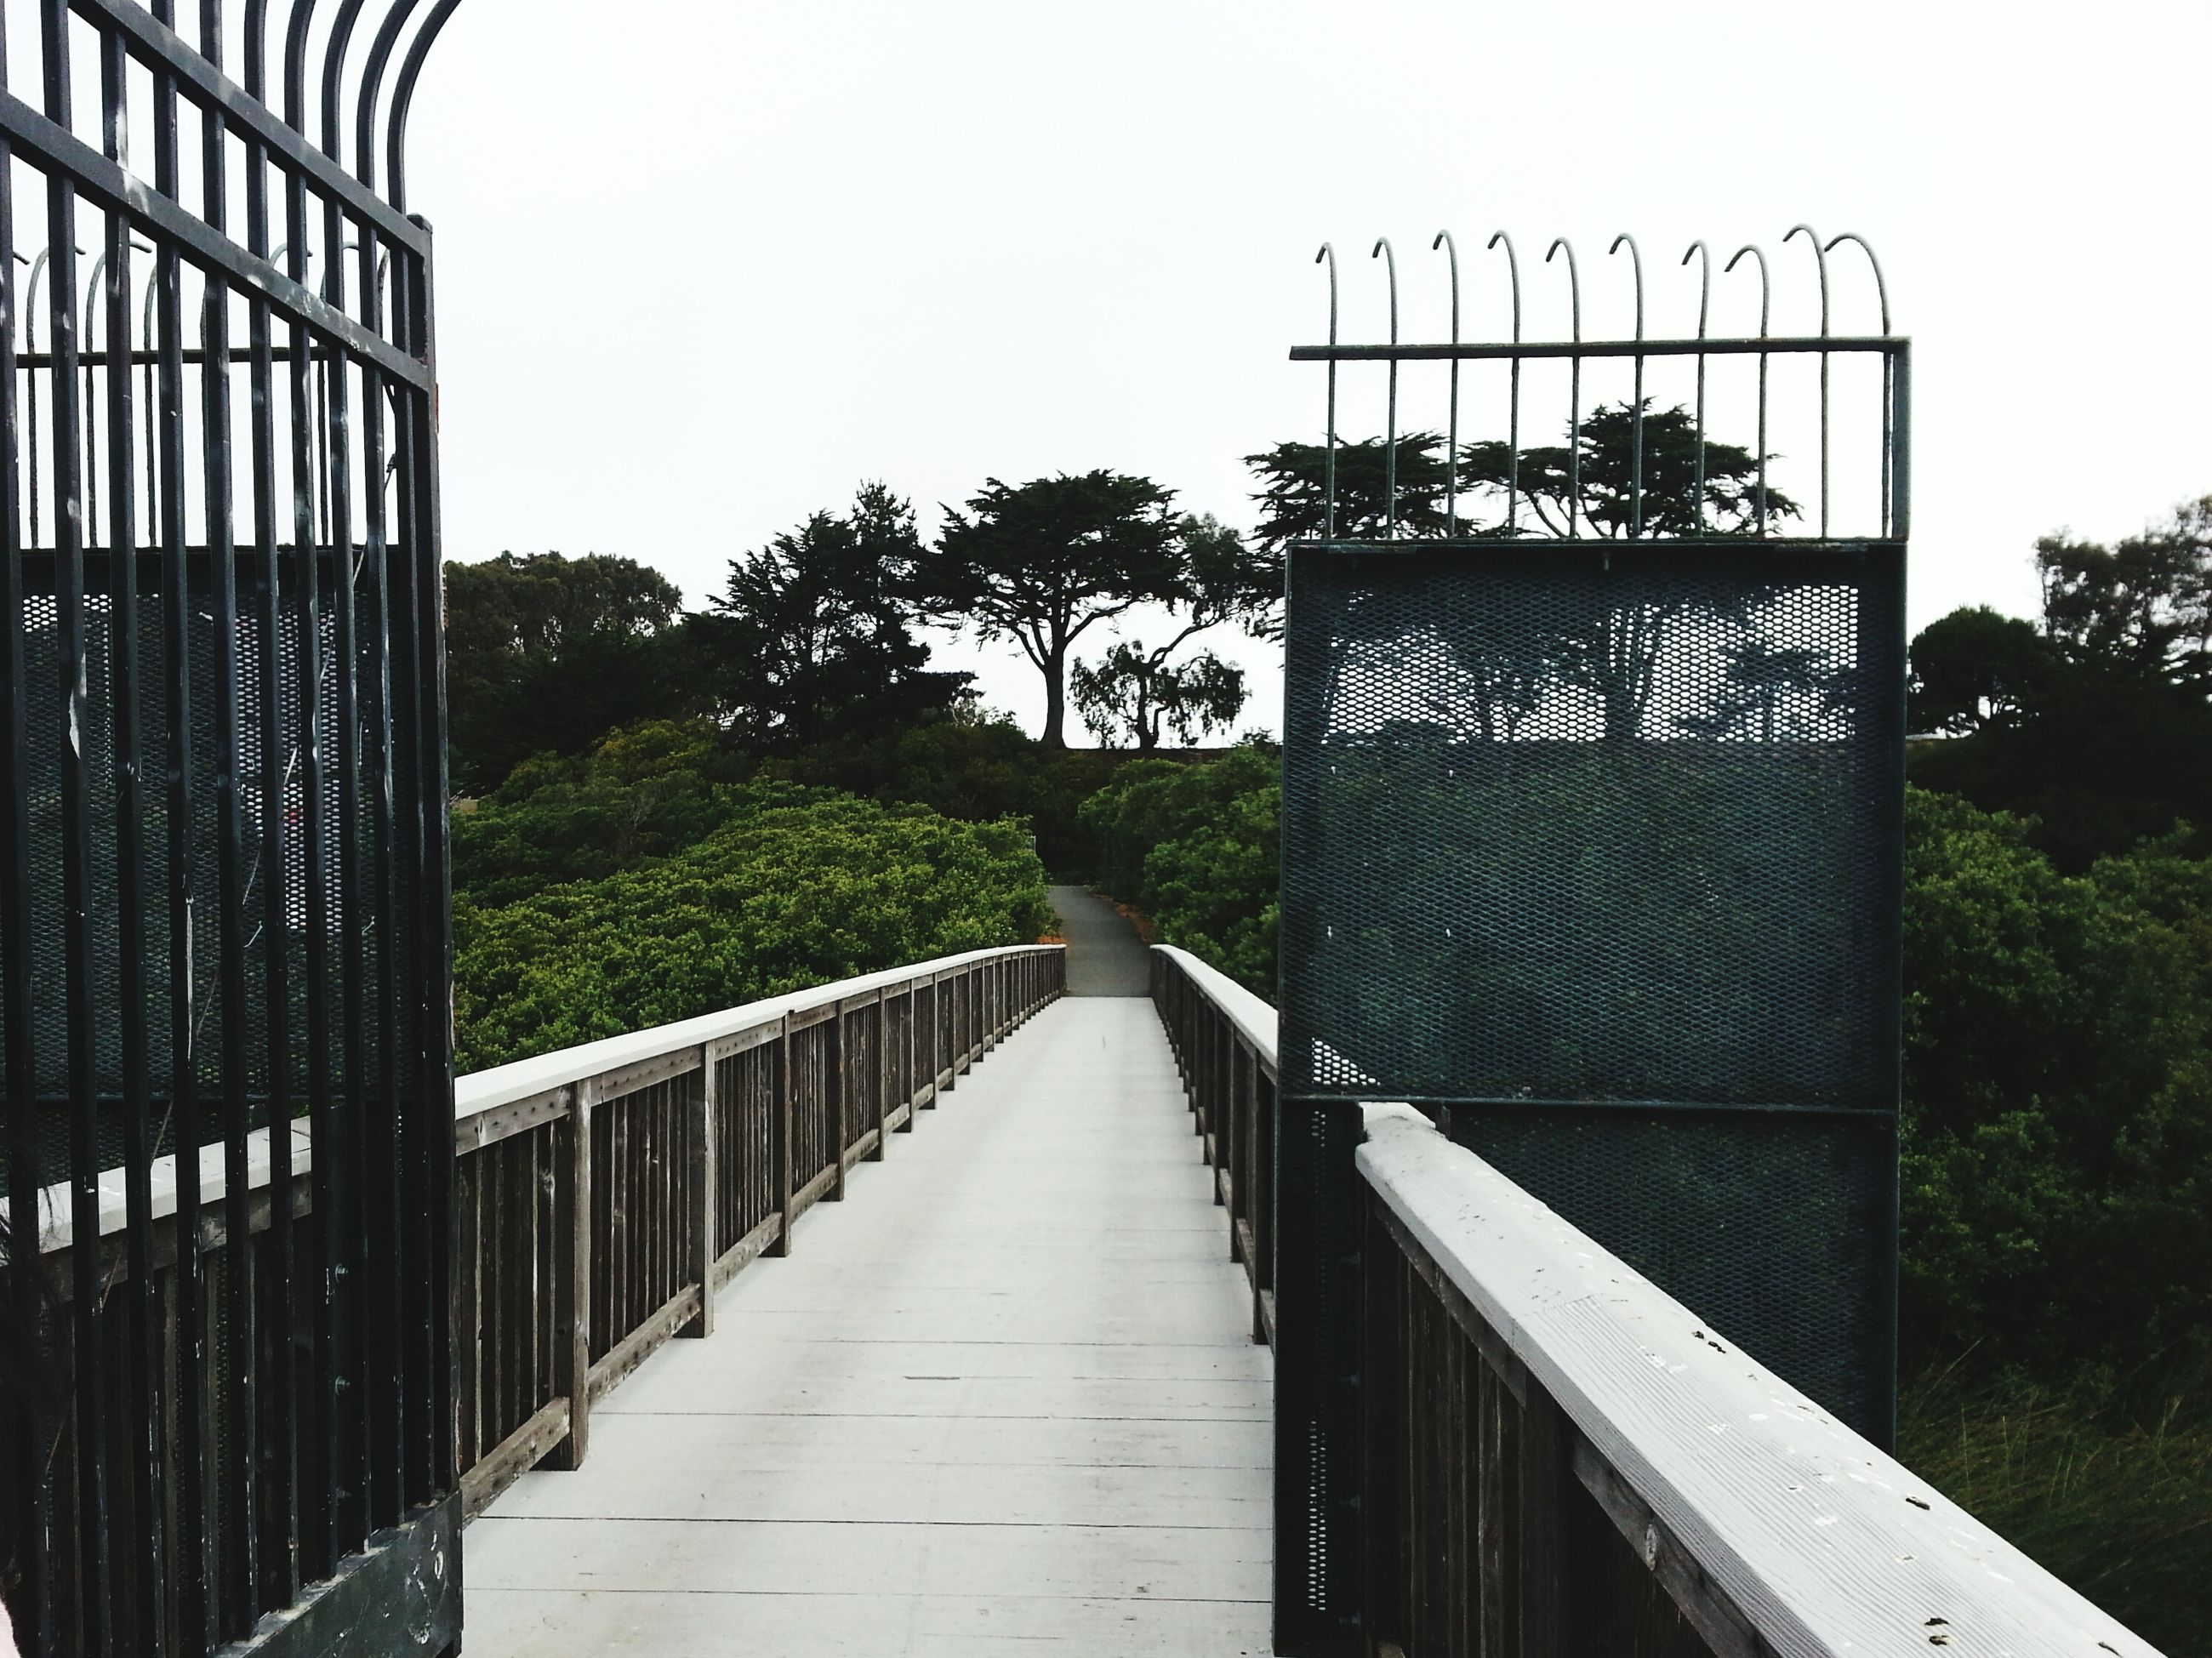 built structure, architecture, railing, building exterior, tree, clear sky, the way forward, gate, steps, footbridge, day, outdoors, staircase, no people, house, wood - material, steps and staircases, metal, sky, fence